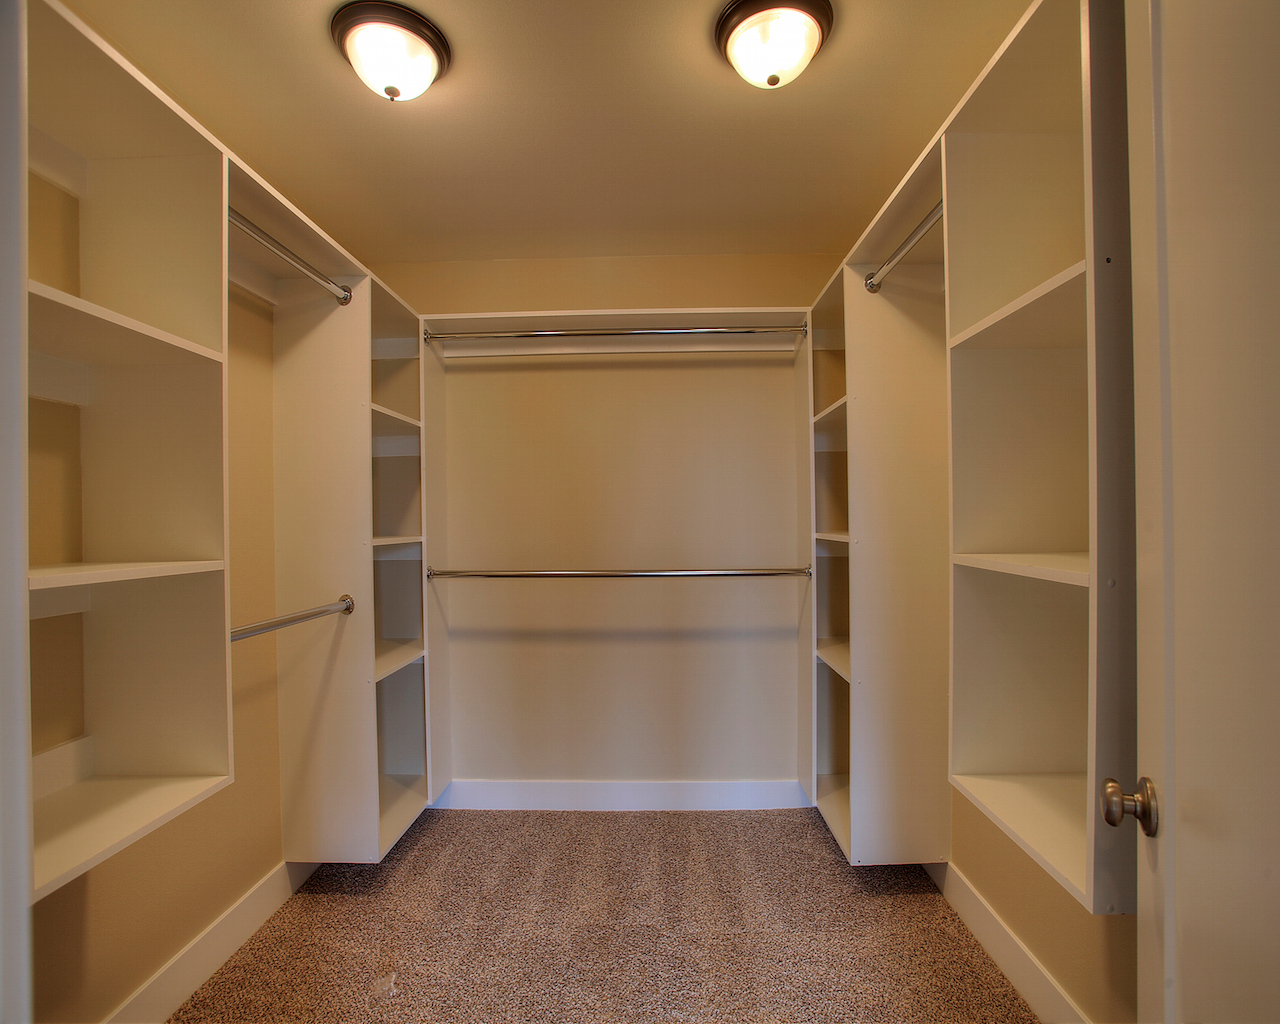 Custom north tacoma new construction 4 bedroom home for Master bathroom with walk in closet